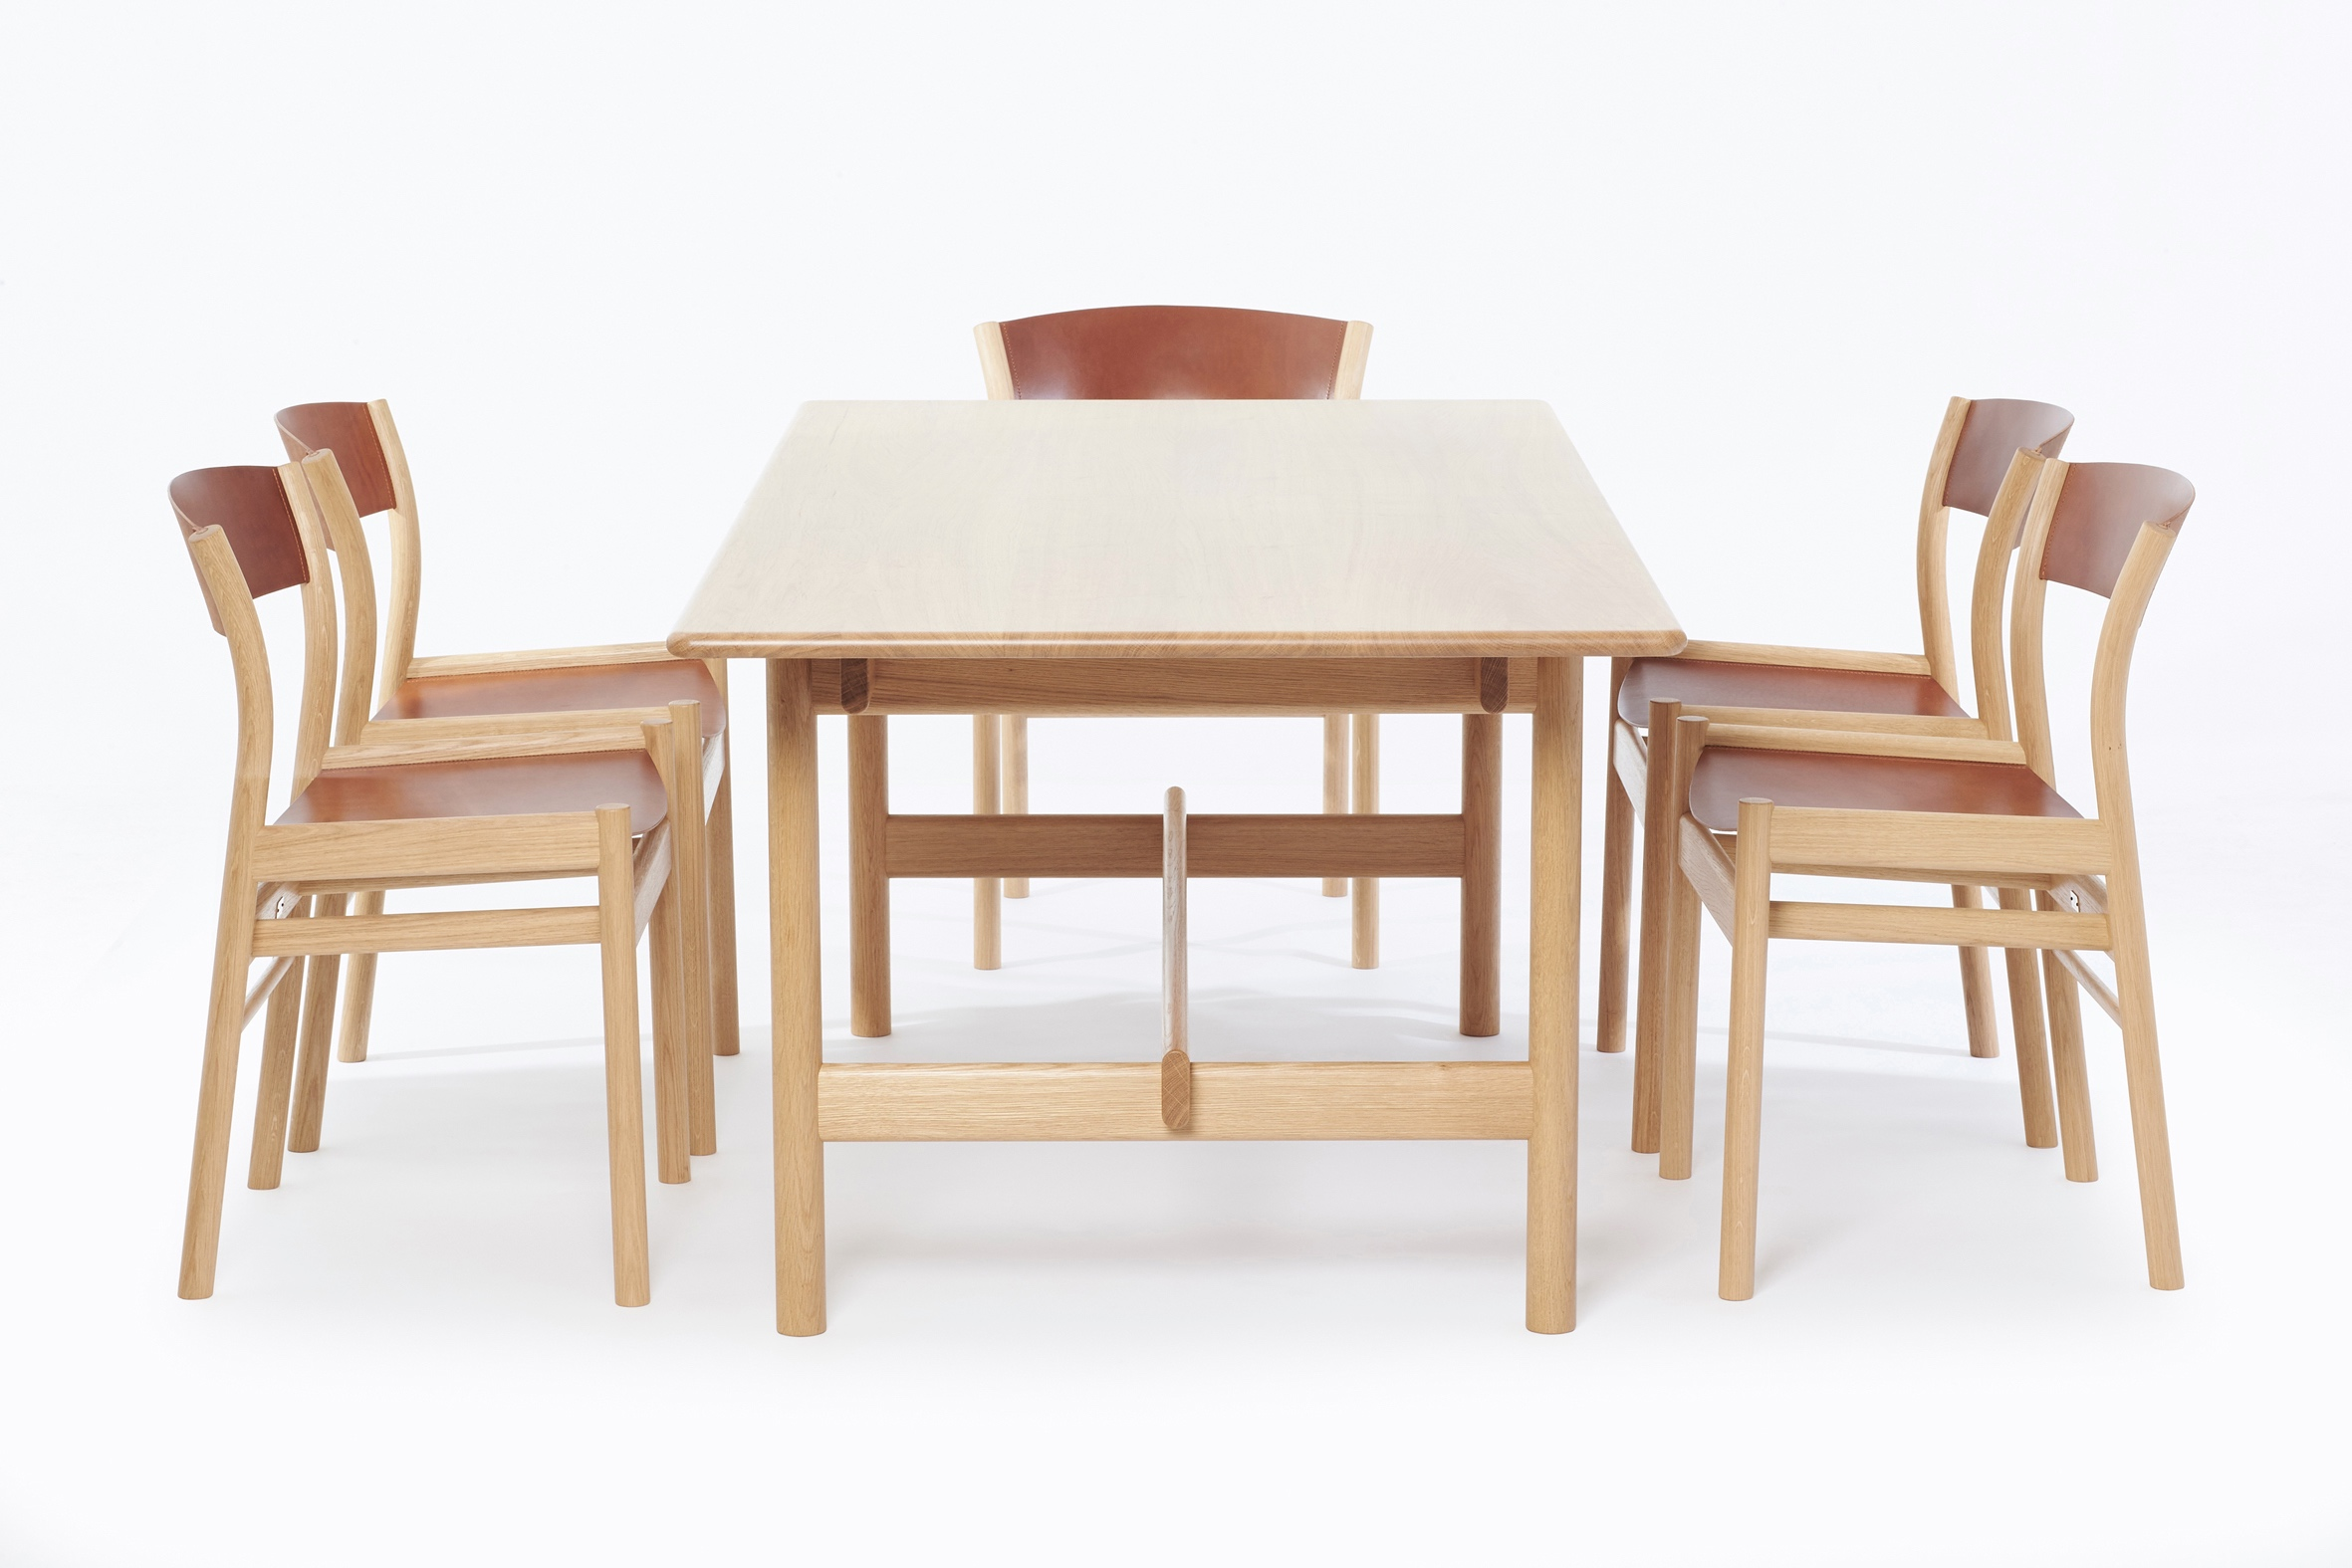 Oxbow Dining Table and Chairs